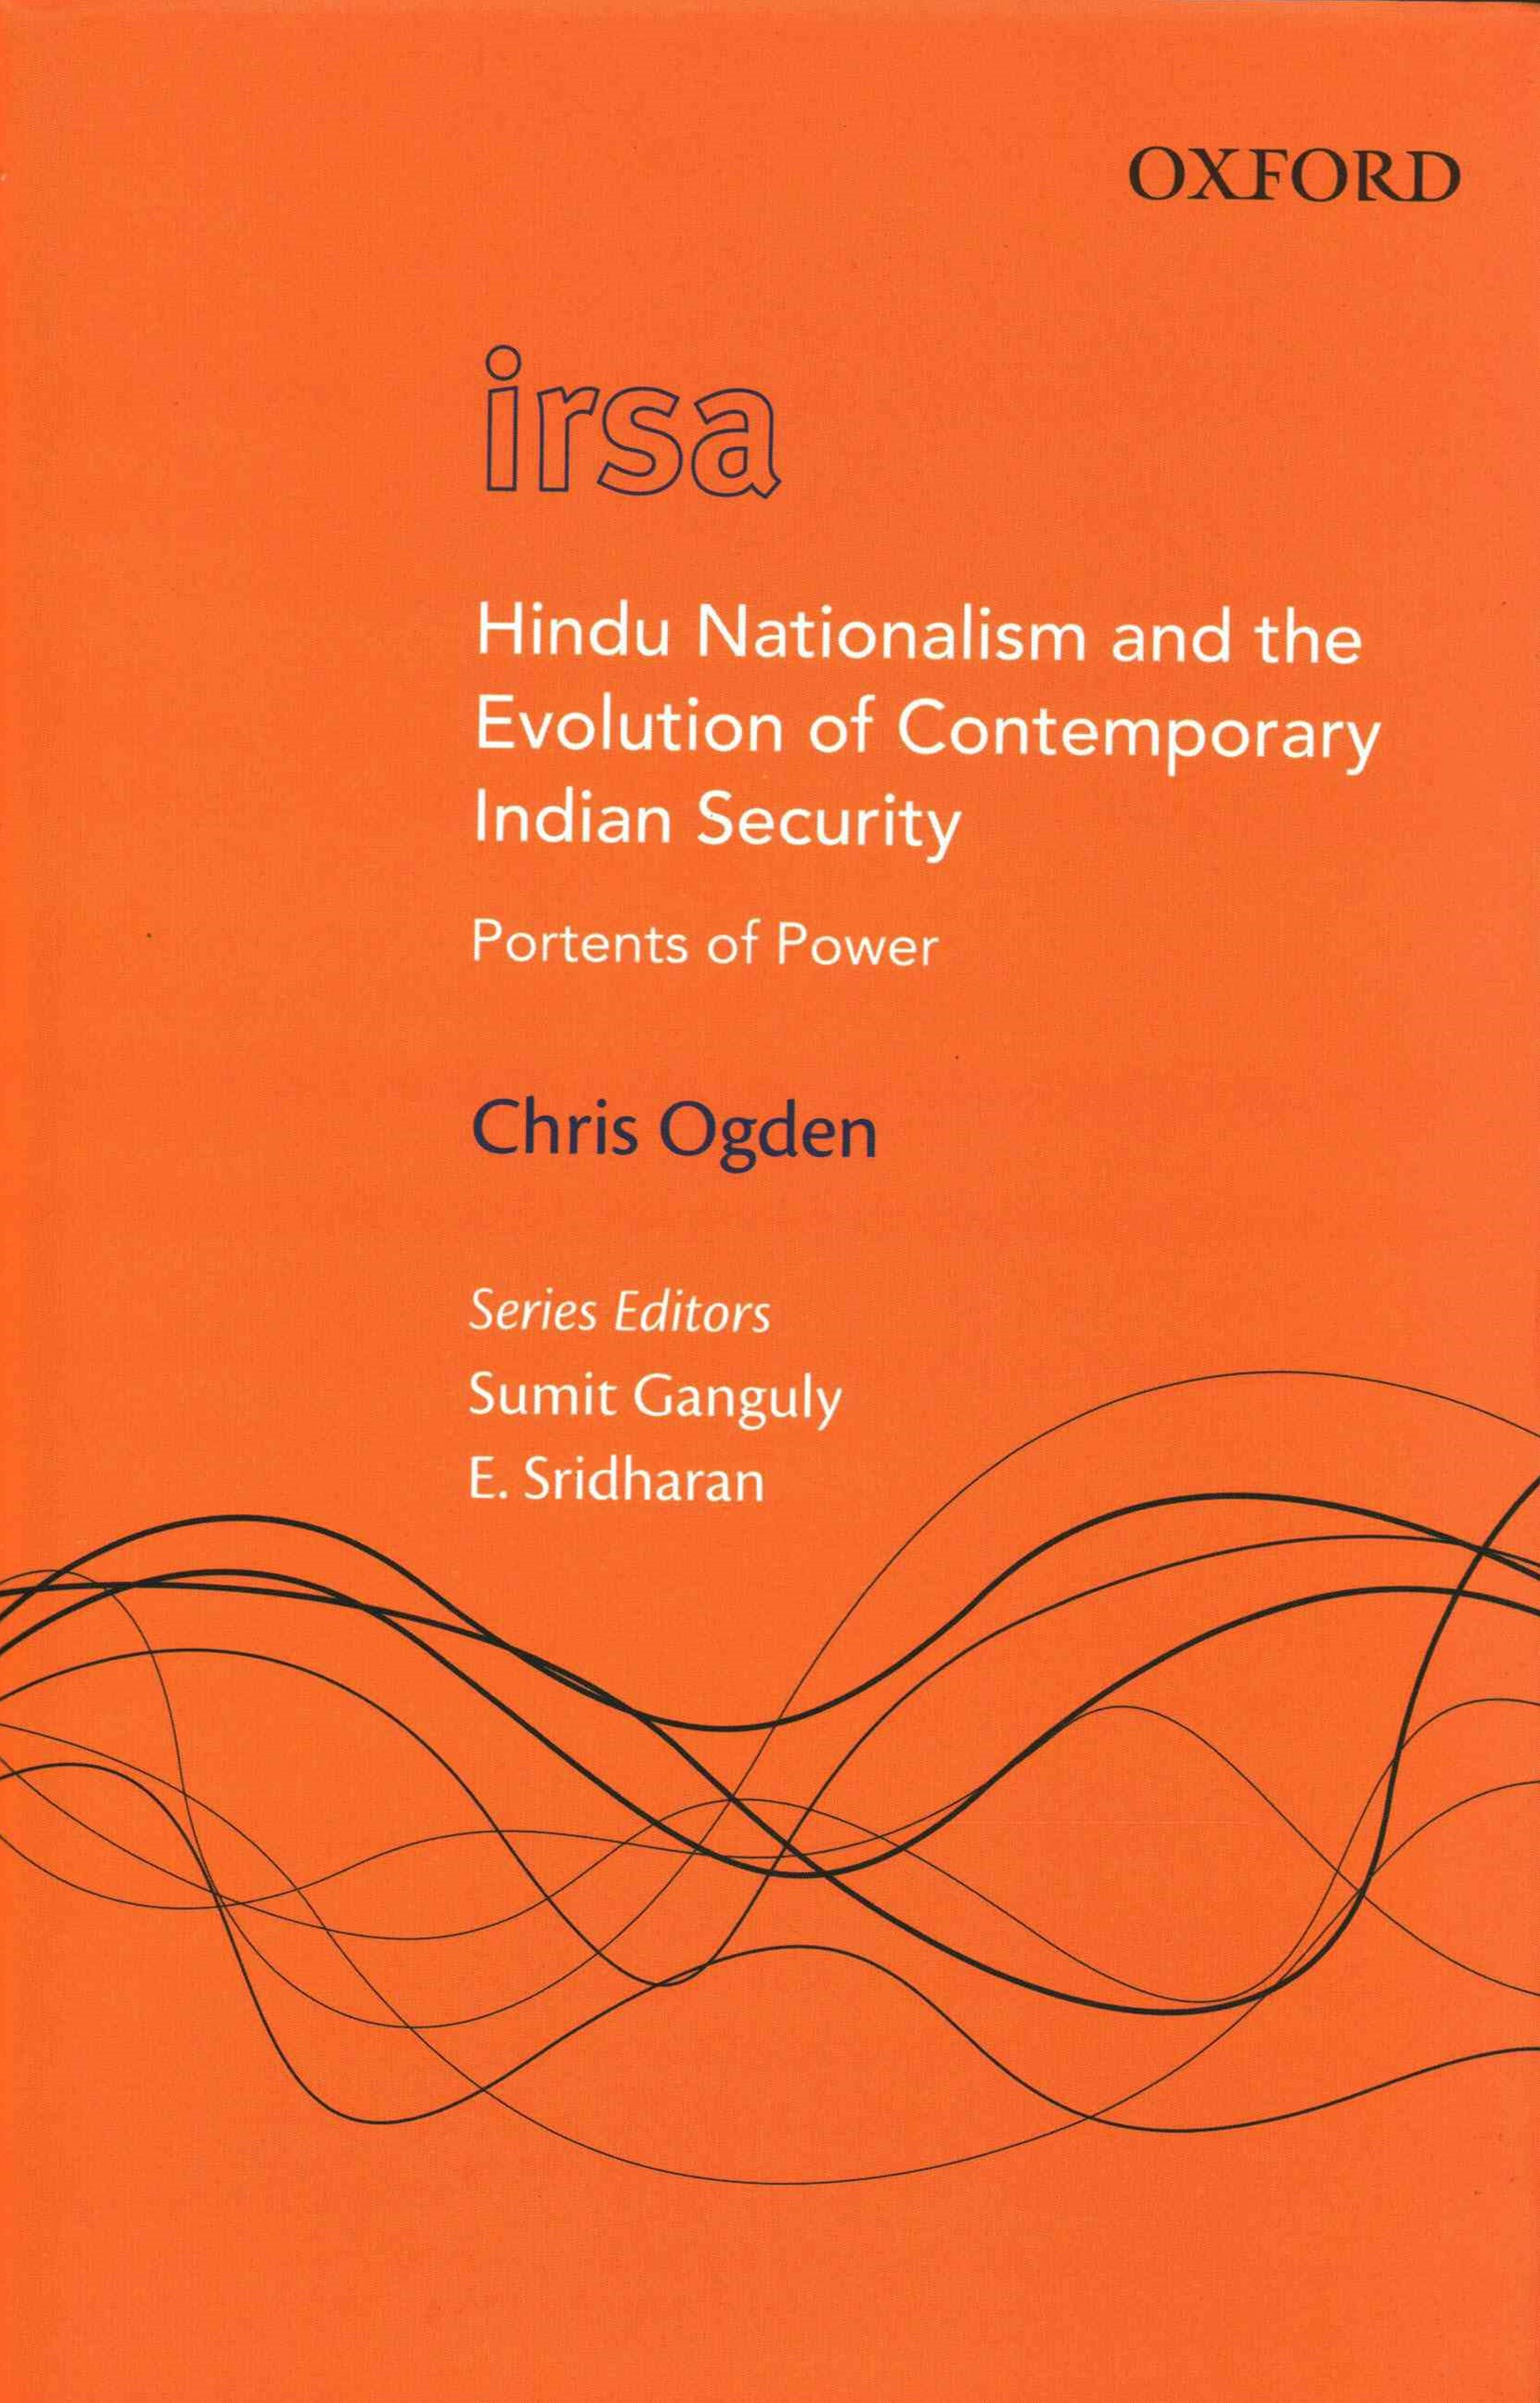 Hindu Nationalism and the Evolution of Contemporary Indian Security